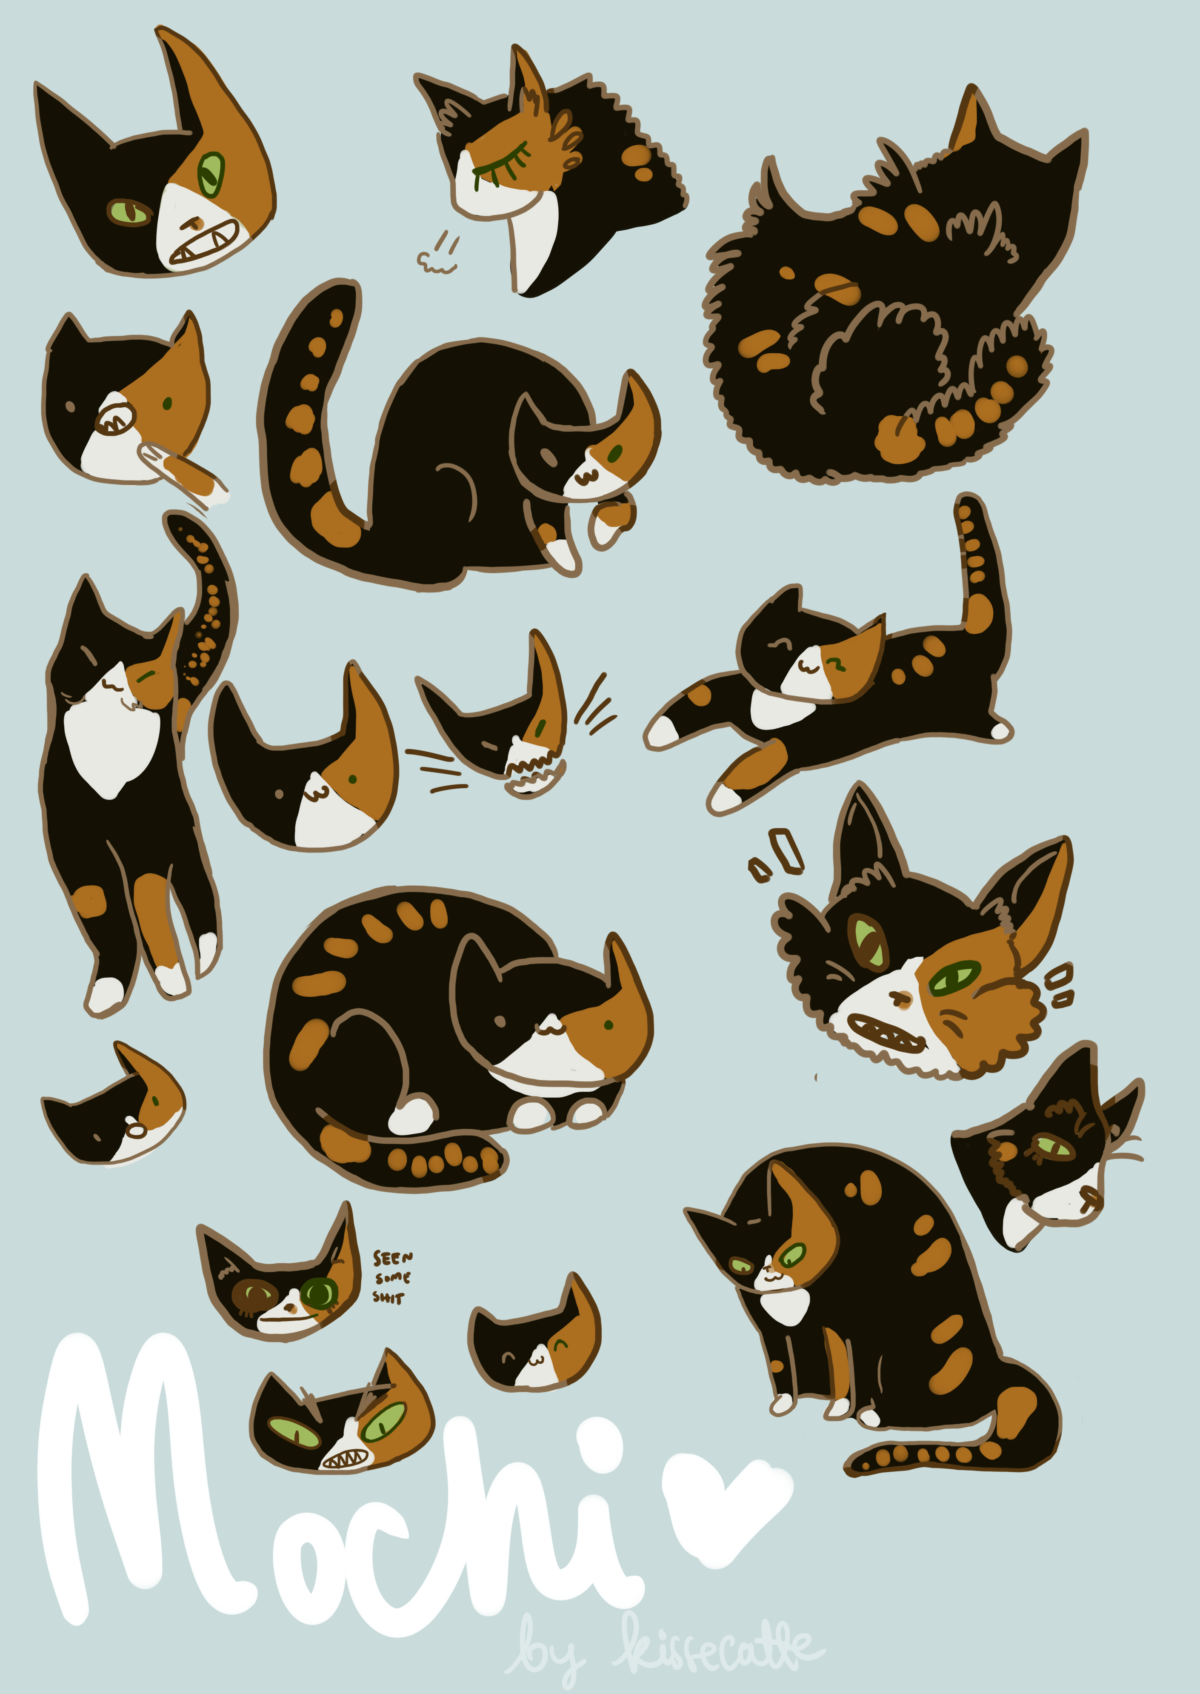 sticker sheet type of drawings of a tortoiseshell with white cat drawn by kissecatte